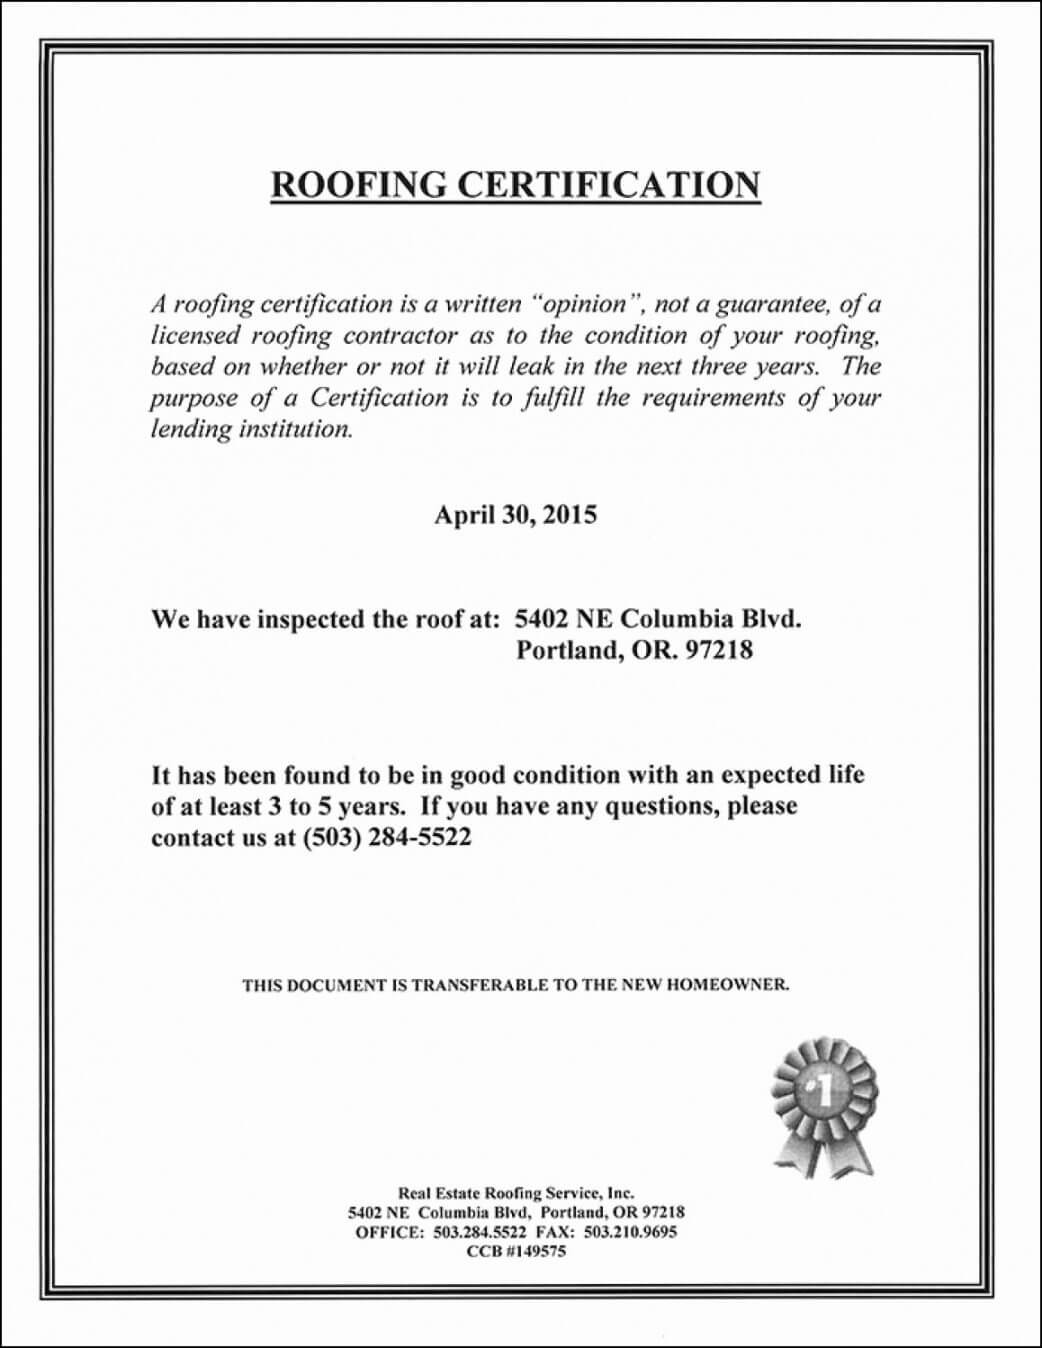 Roofing Certificate Of Completion Template Lovely Roof Intended For Roof Certification Template